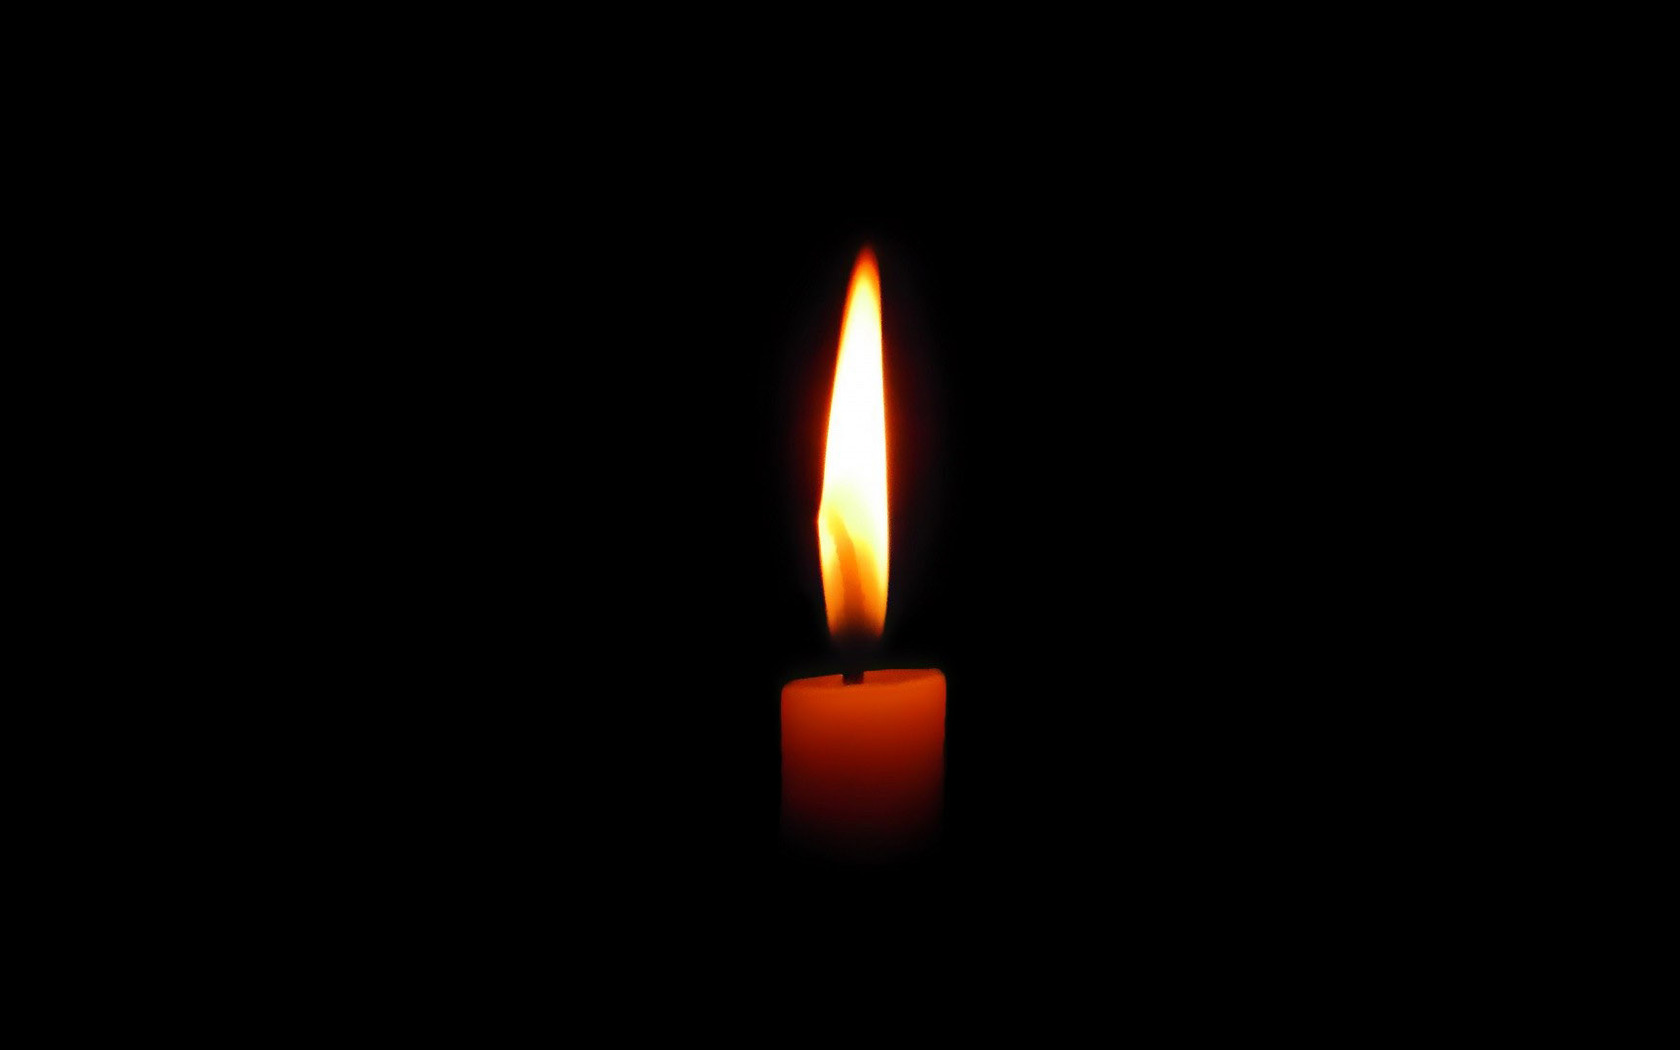 Candle wallpaper 11797 1680x1050